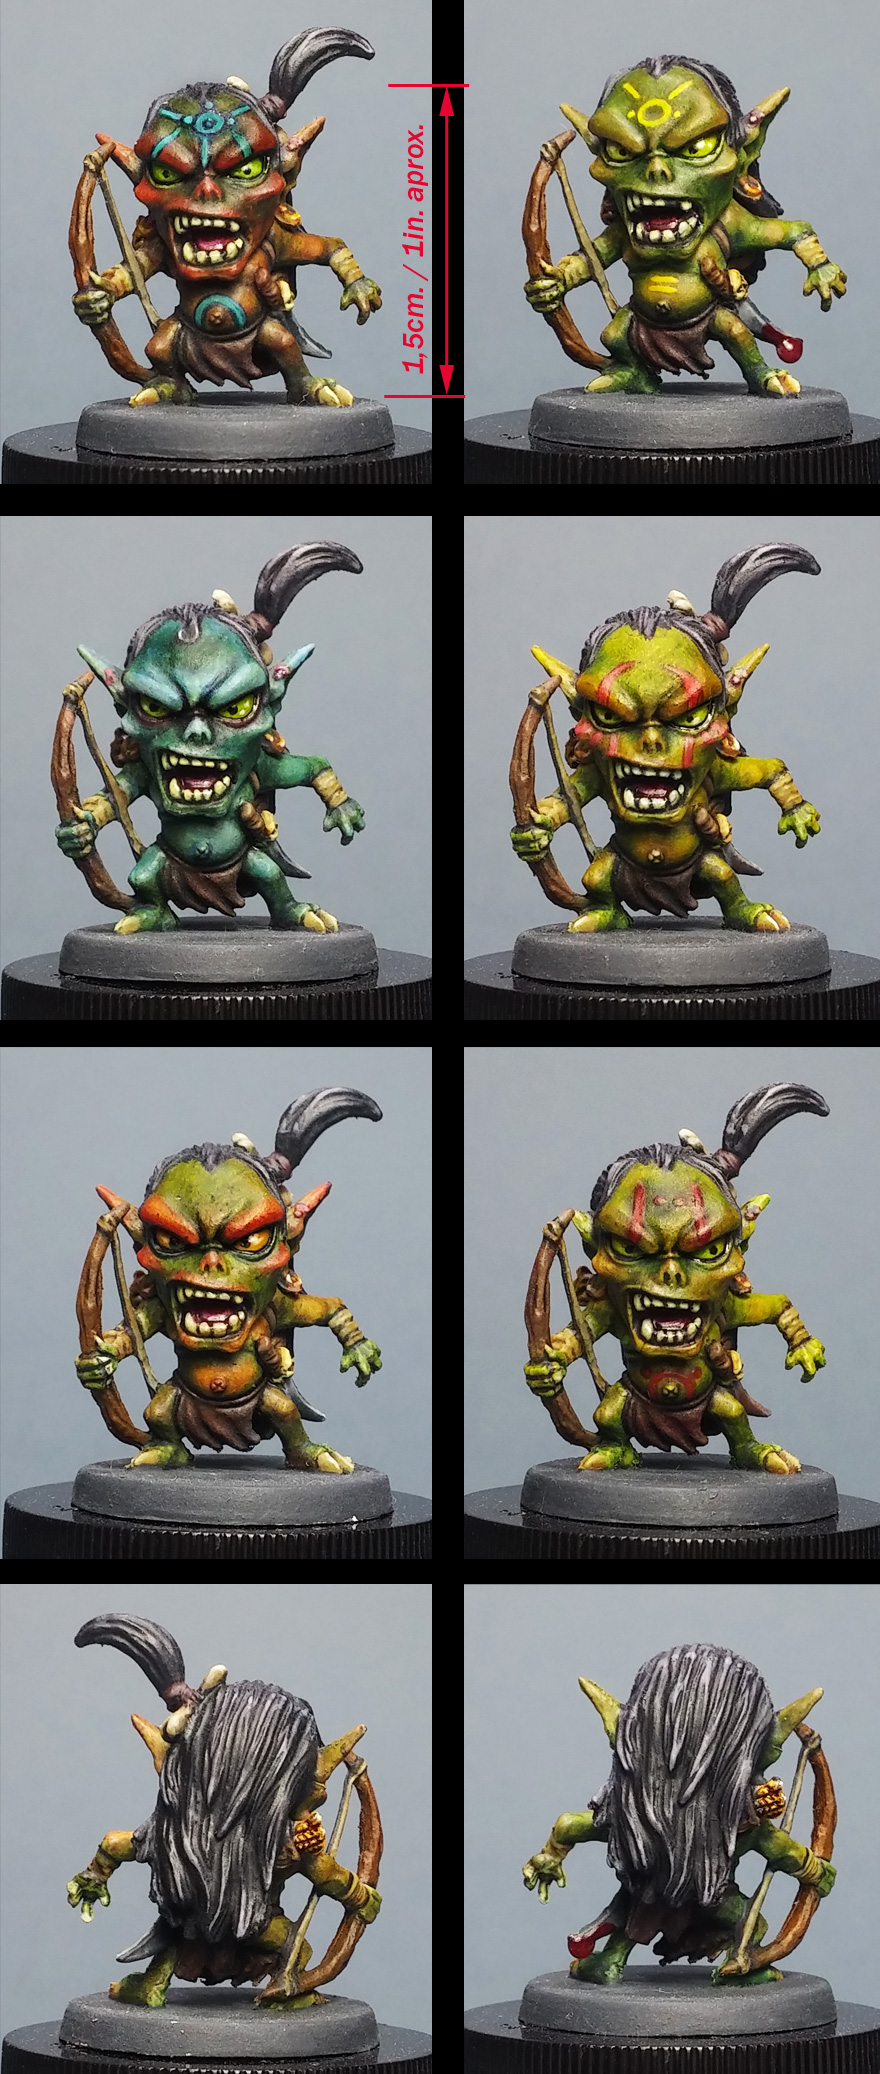 Goblin archers from Arcadia Quest